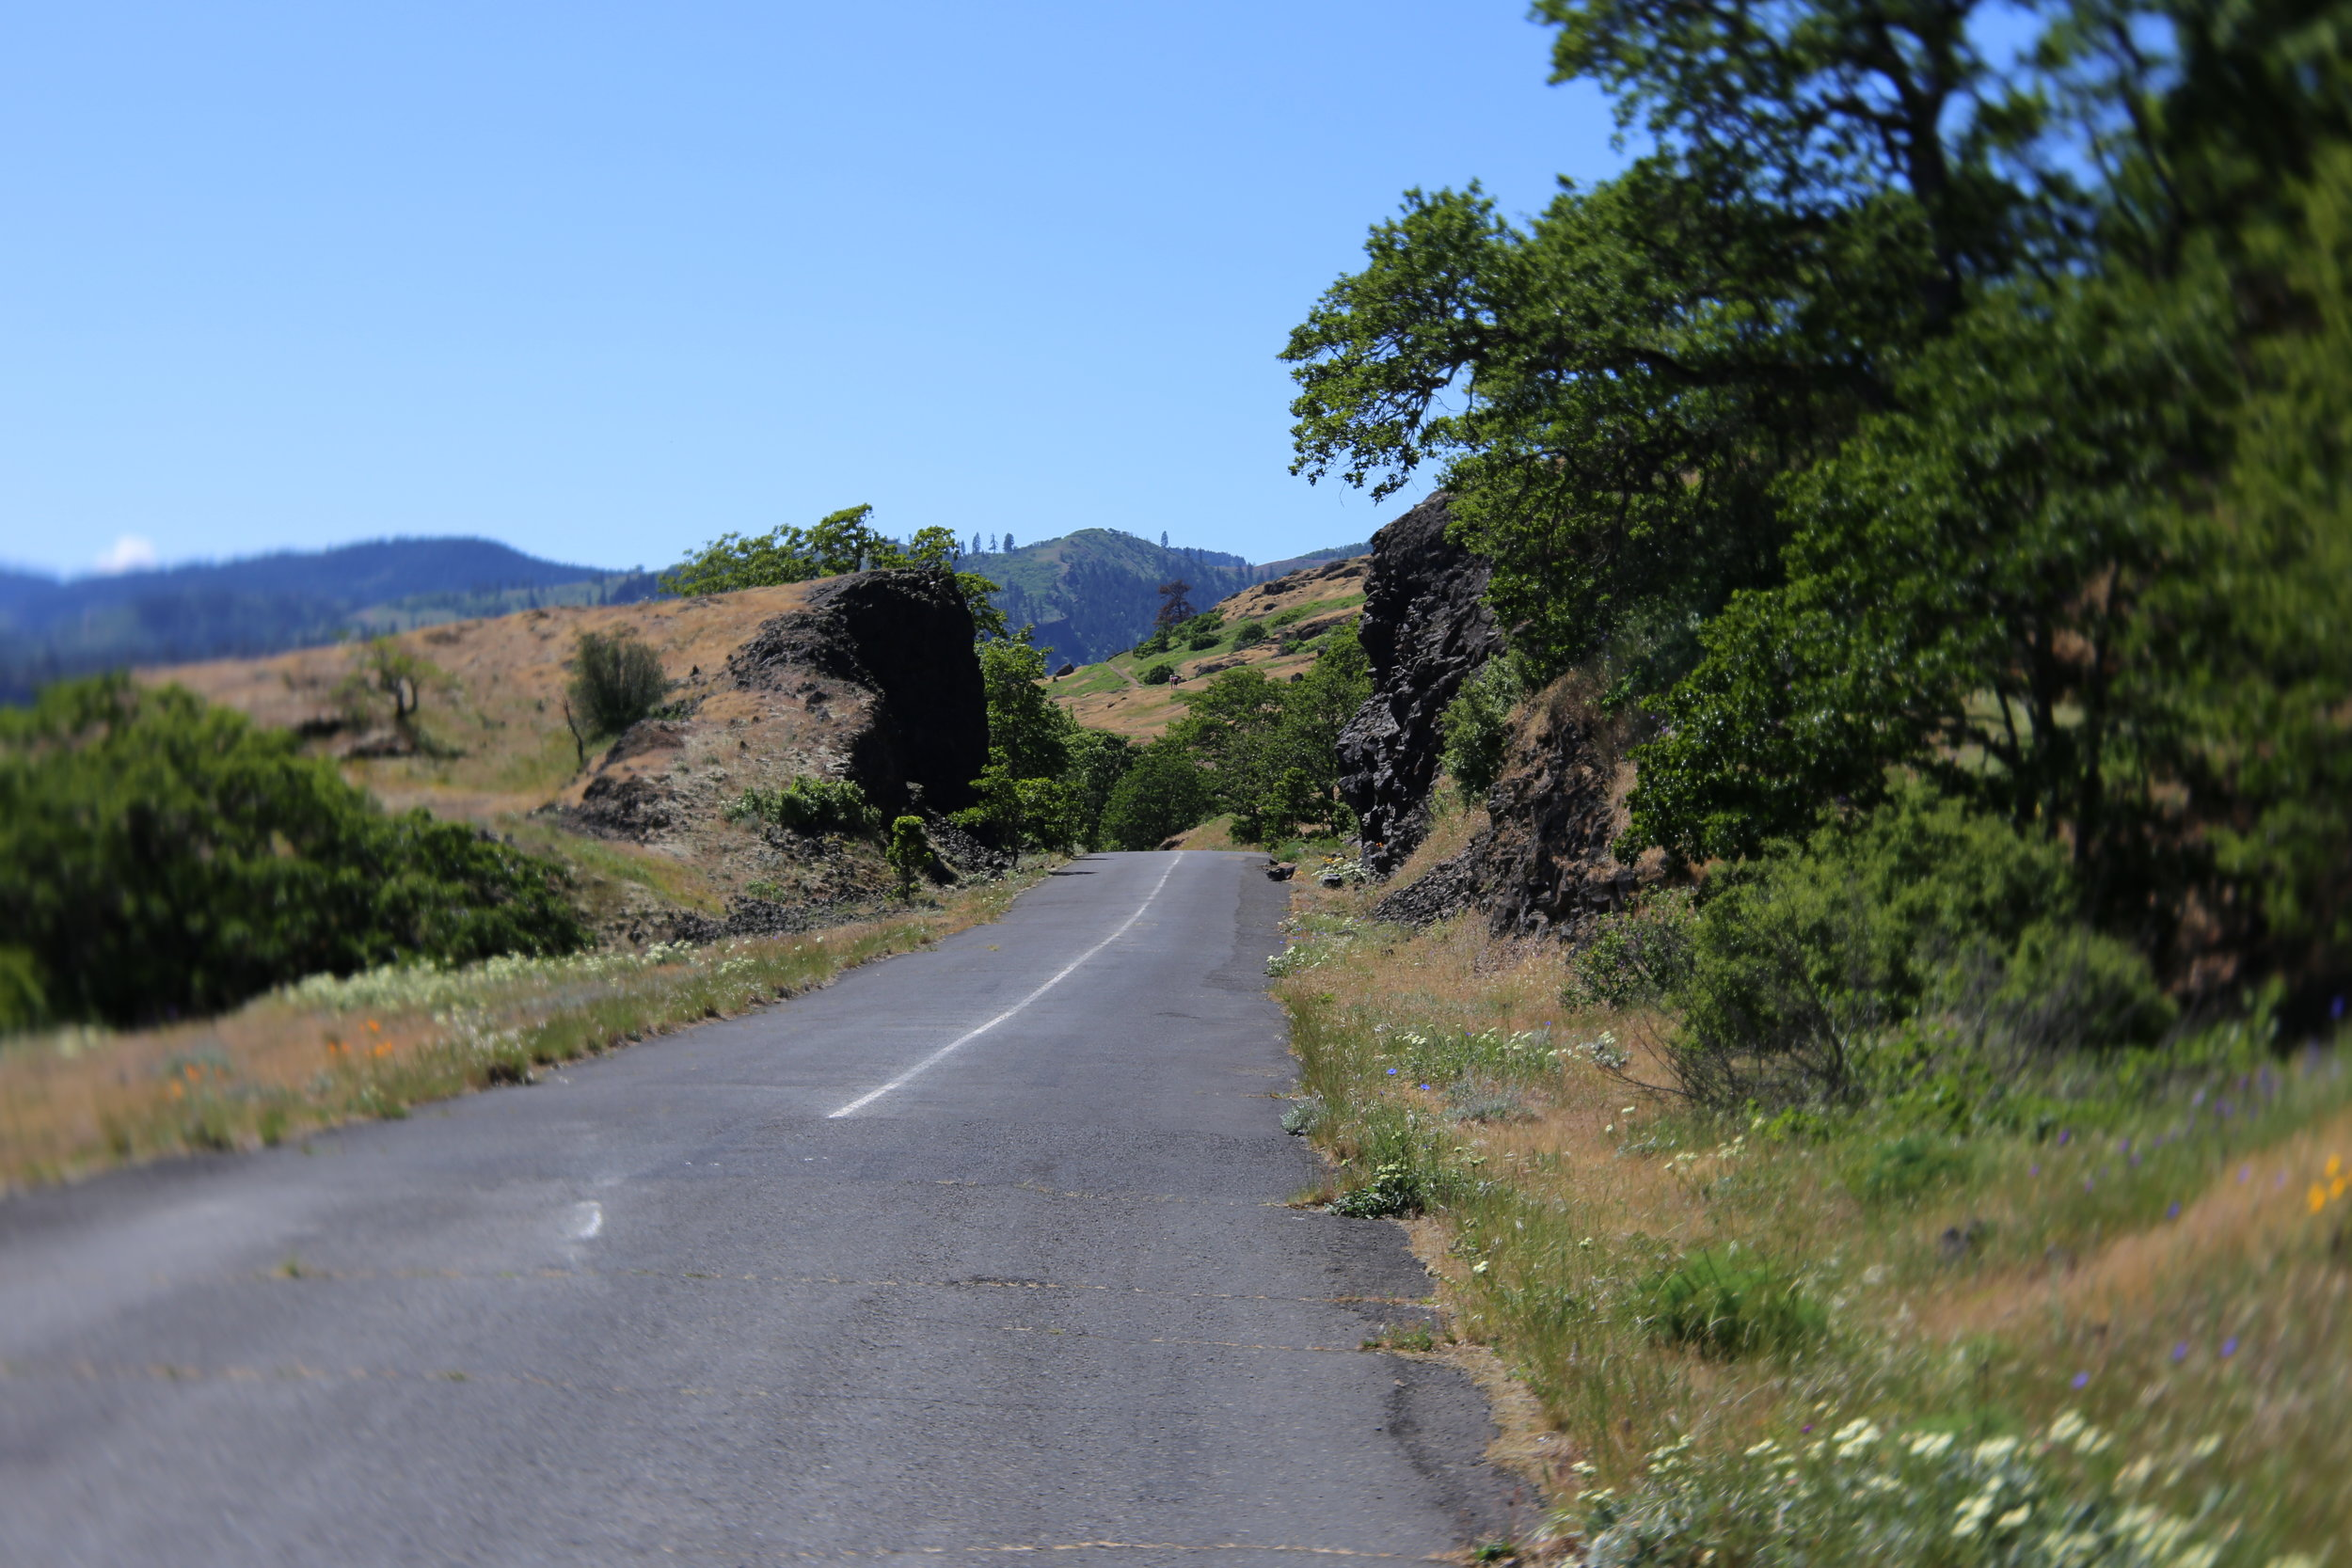 Hikes begin along the old highway